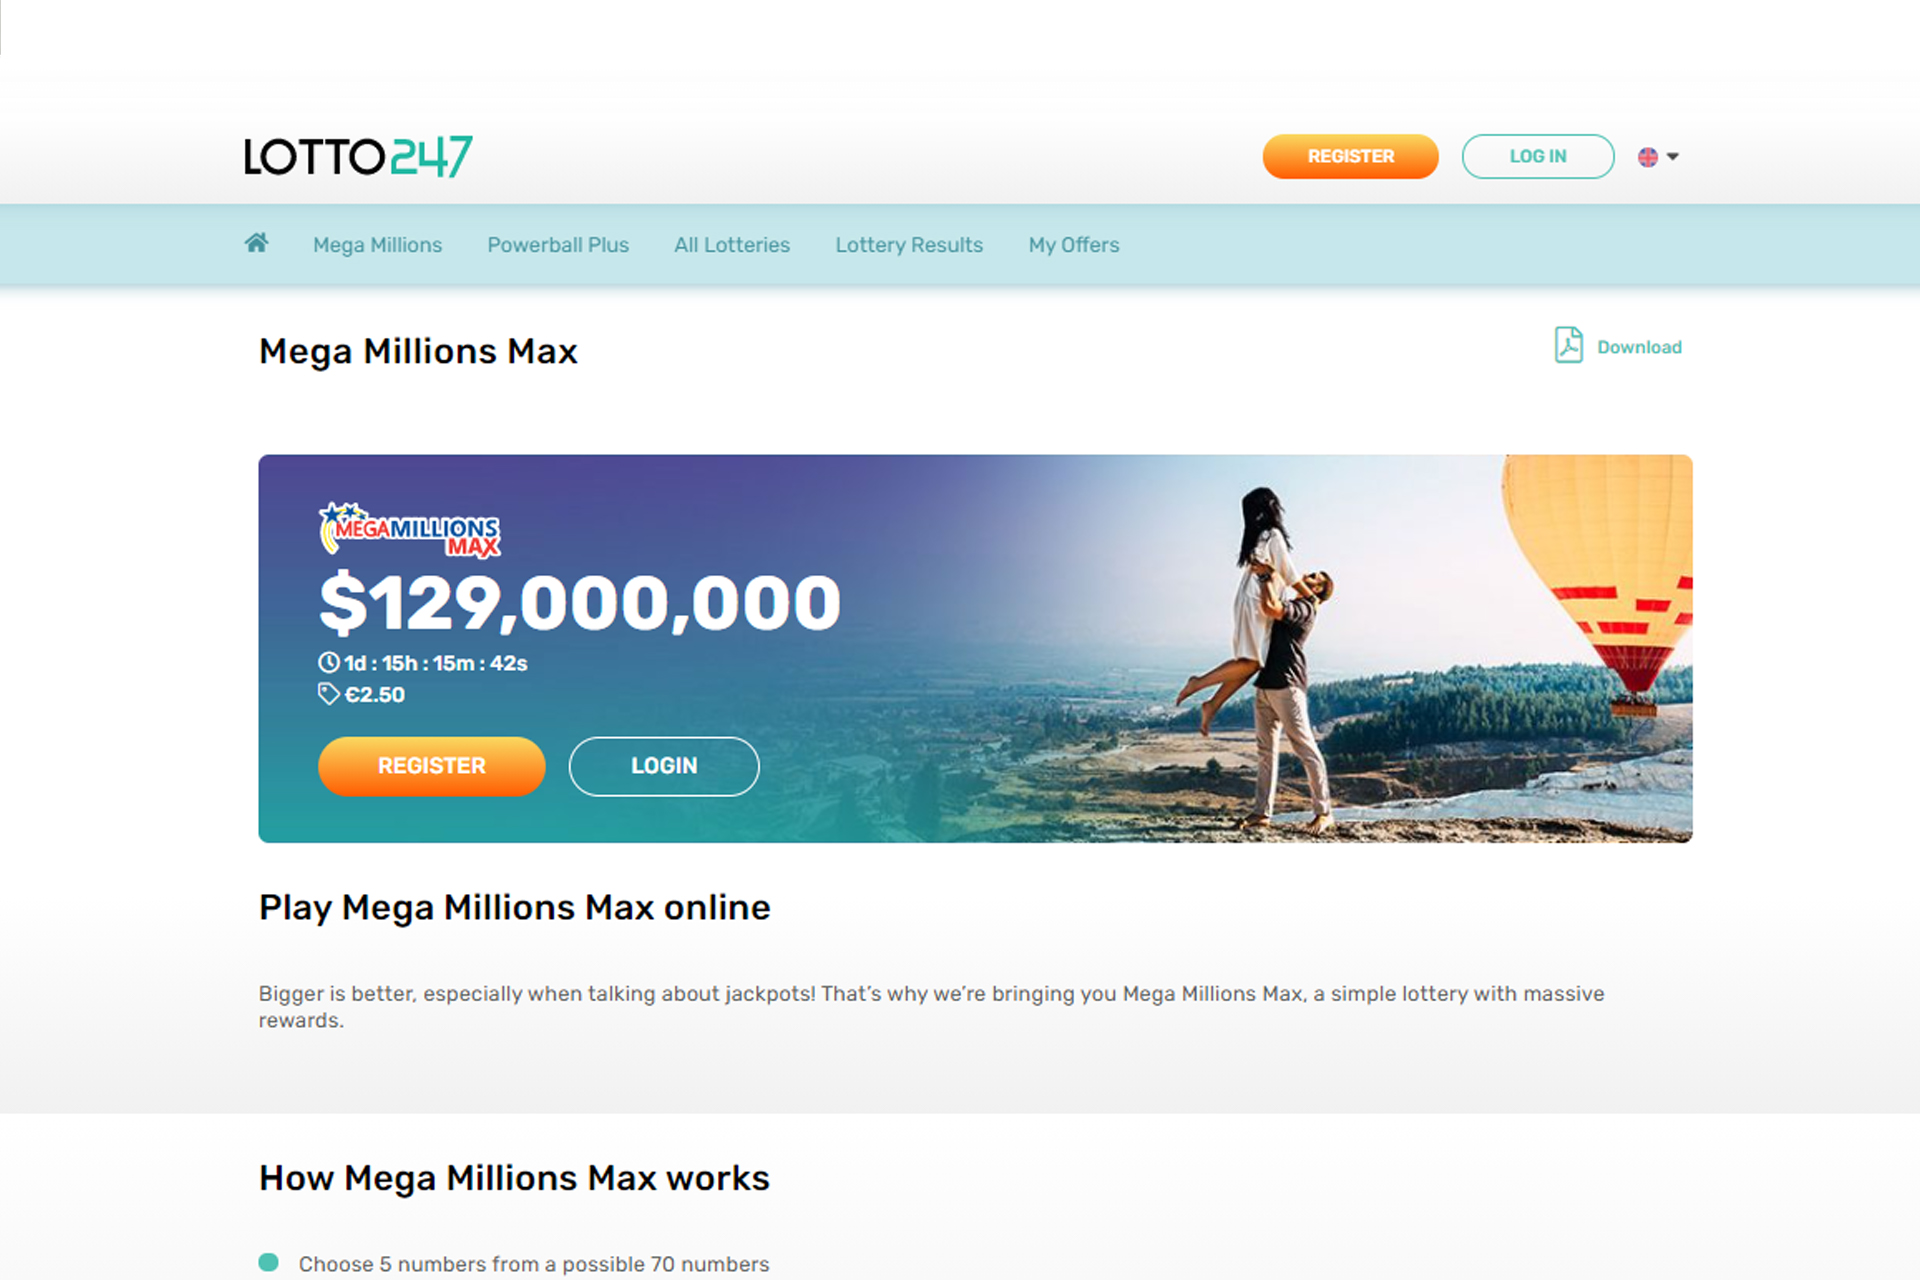 Collect a jackpot over 100 million dollars playing Mega Millions Max.